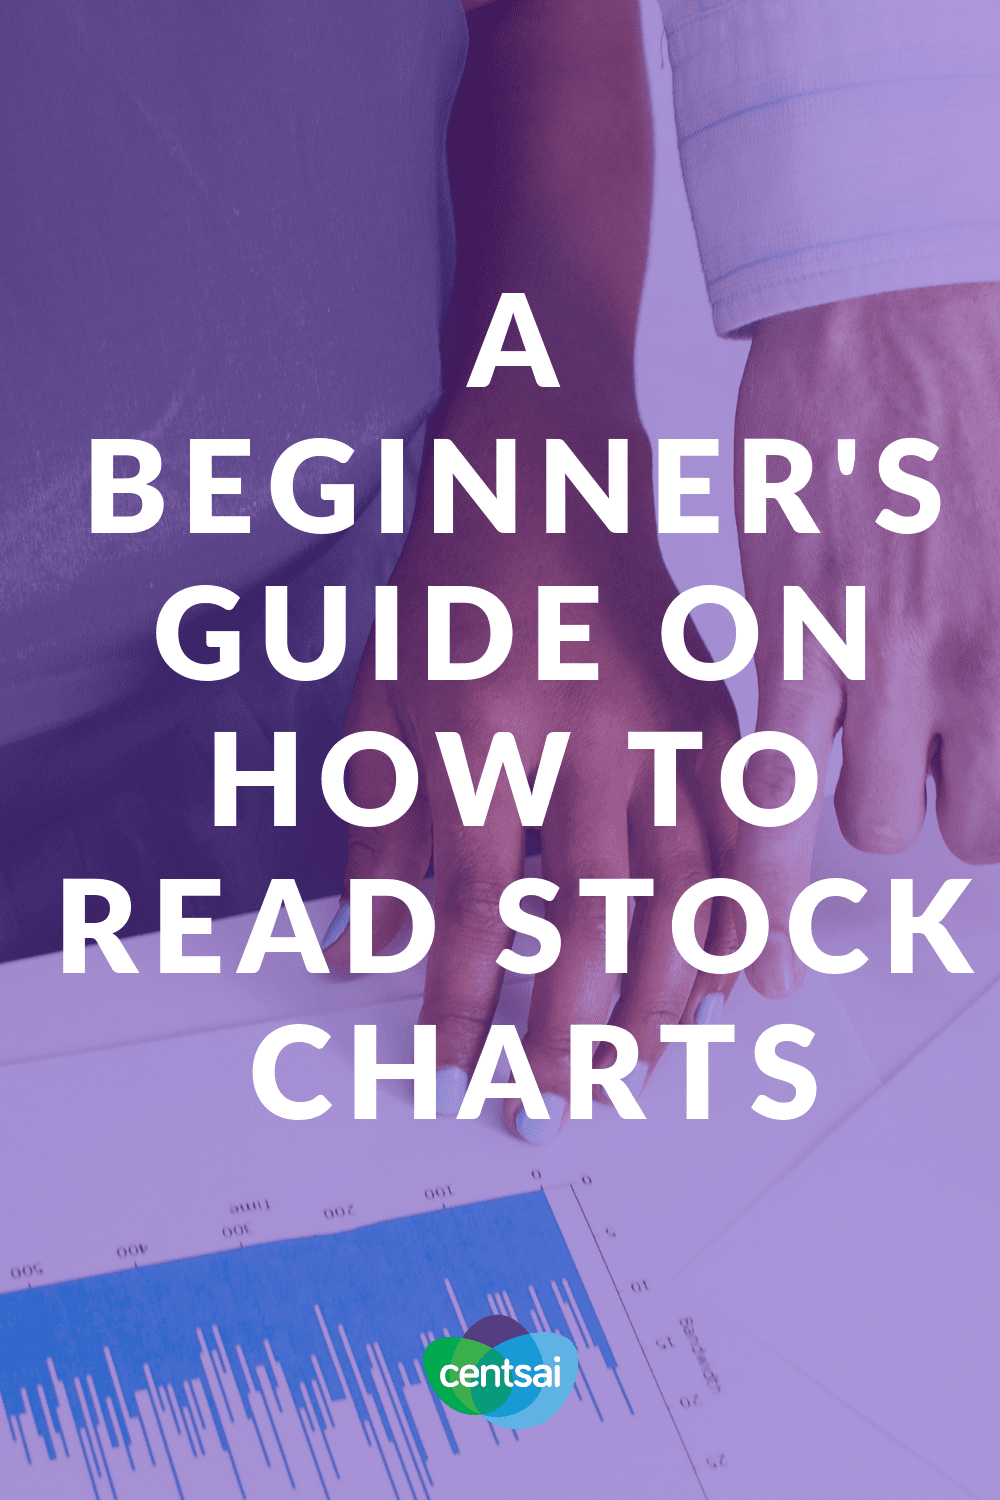 A Beginner's Guide on How to Read Stock Charts. Do you want to start investing, but feel lost on how to read stock charts? We've got you covered. Check out this comprehensive guide. #investing #stockchart